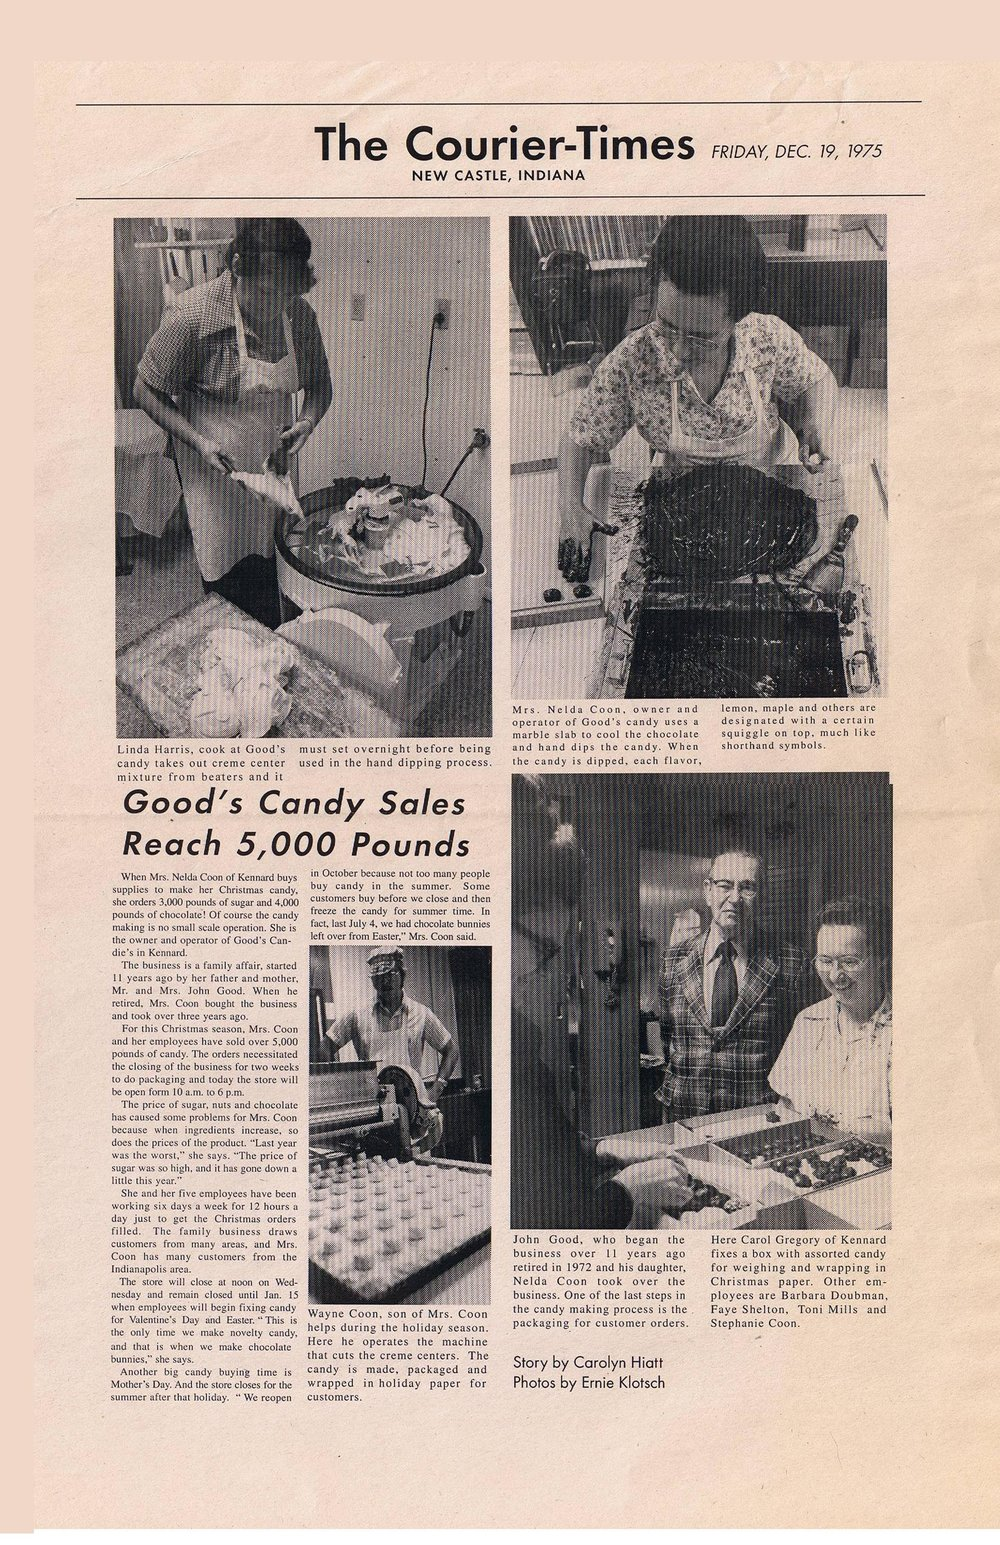 Goods_Courier-Times_Dec1975.jpg